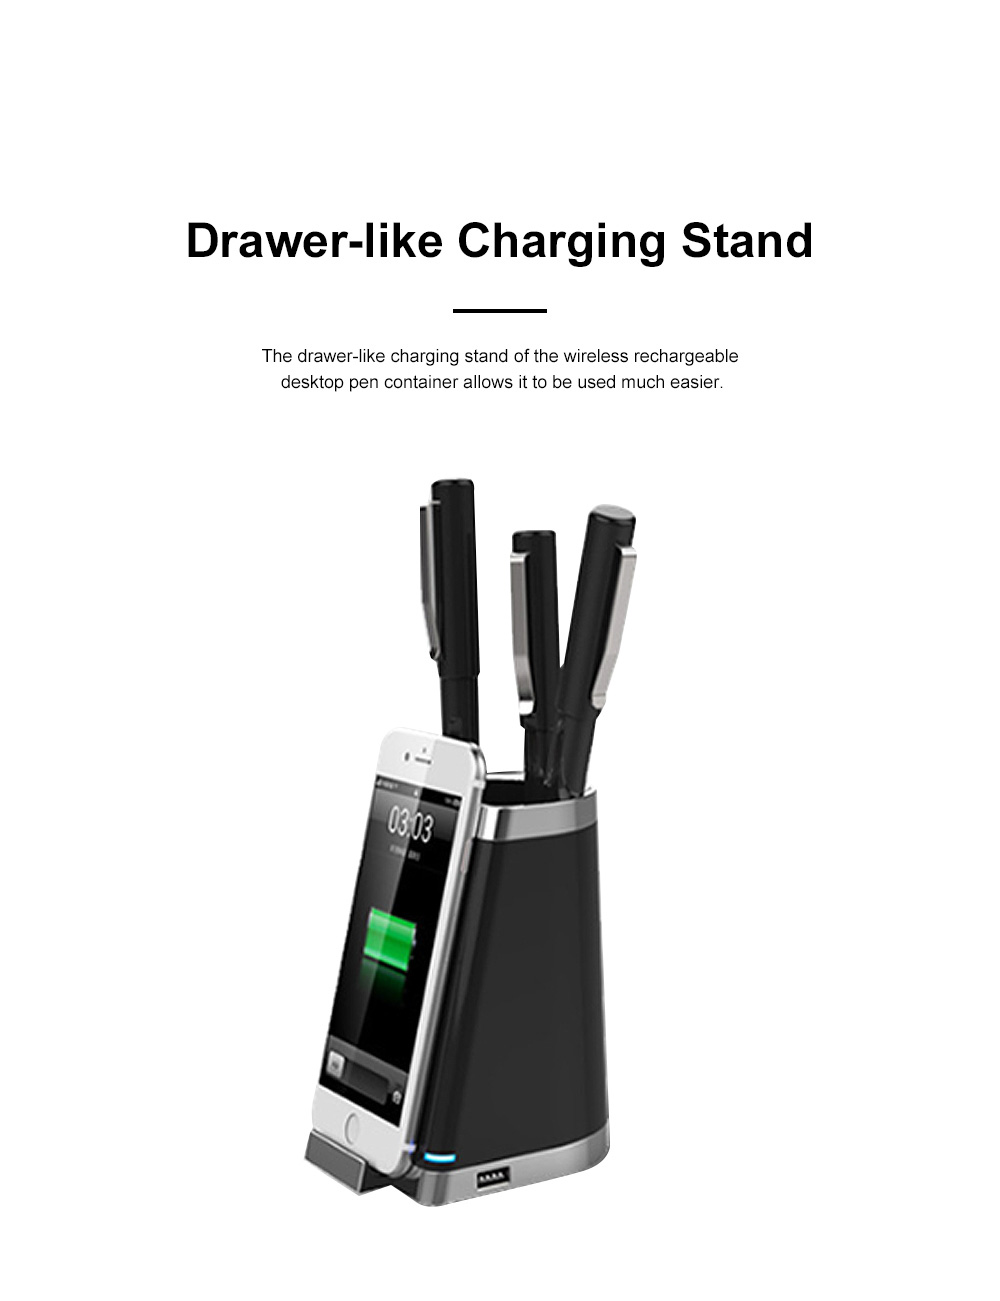 Wireless Rechargeable Desktop Pen Container for Table Top Storage Desktop Brush Pot Charger Drawer-like Charging Stand Tubular Pen Rack 3